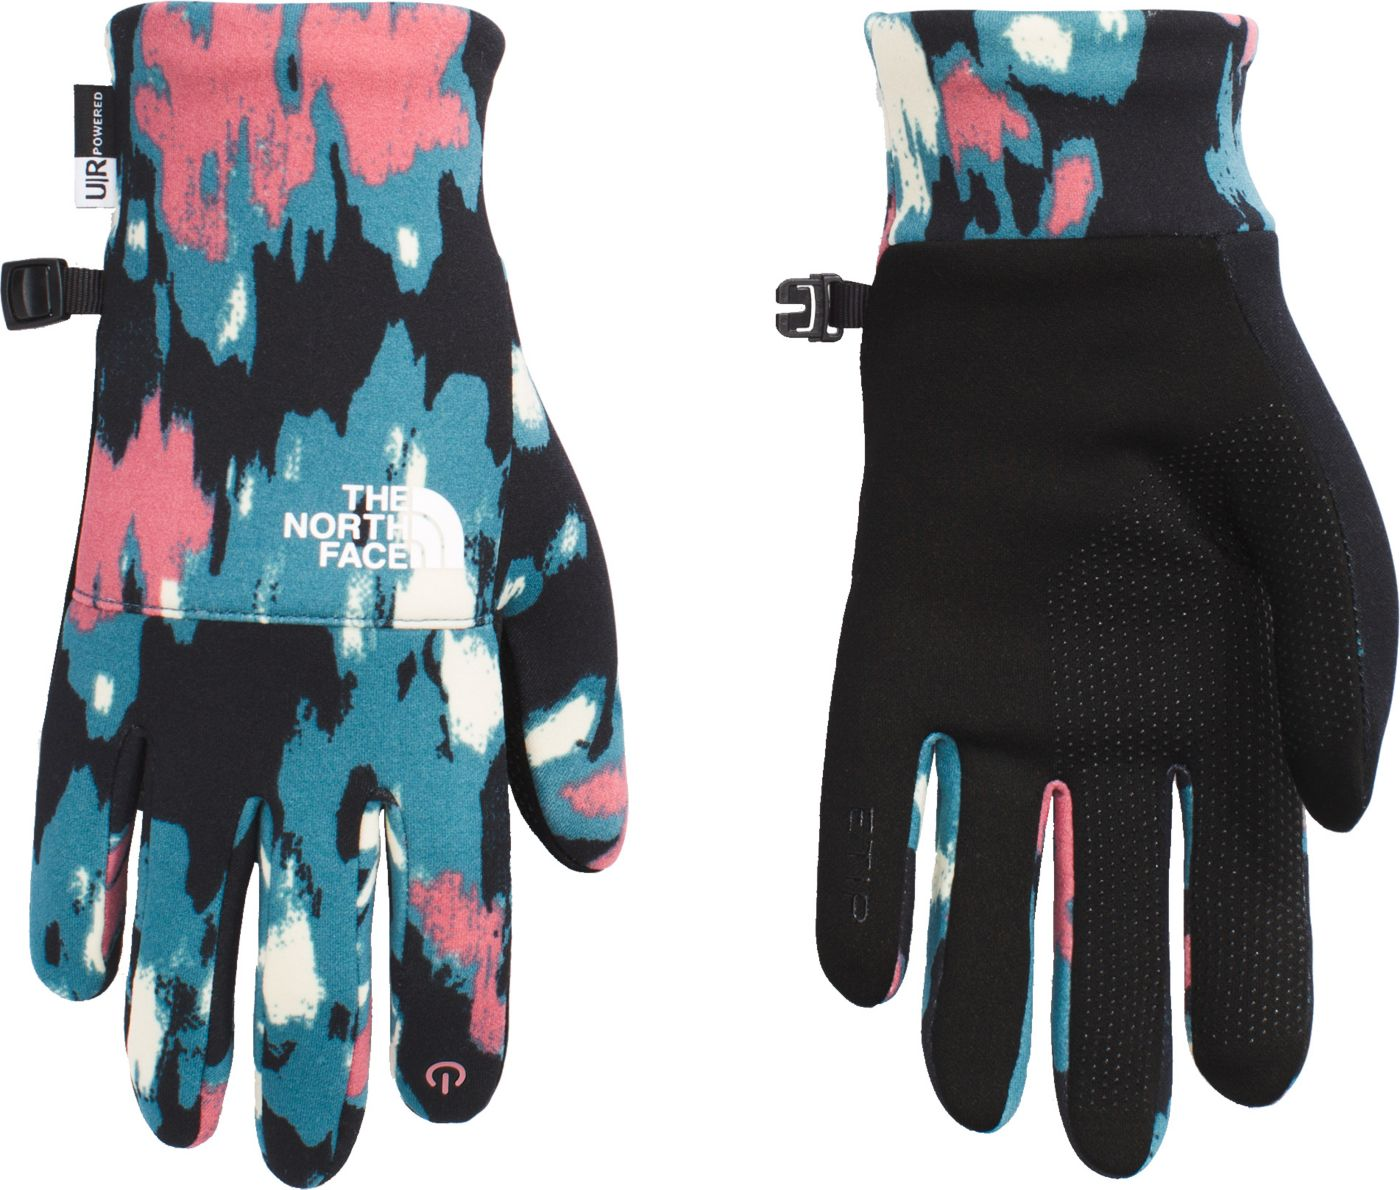 The North Face Women's Etip Recycled Gloves